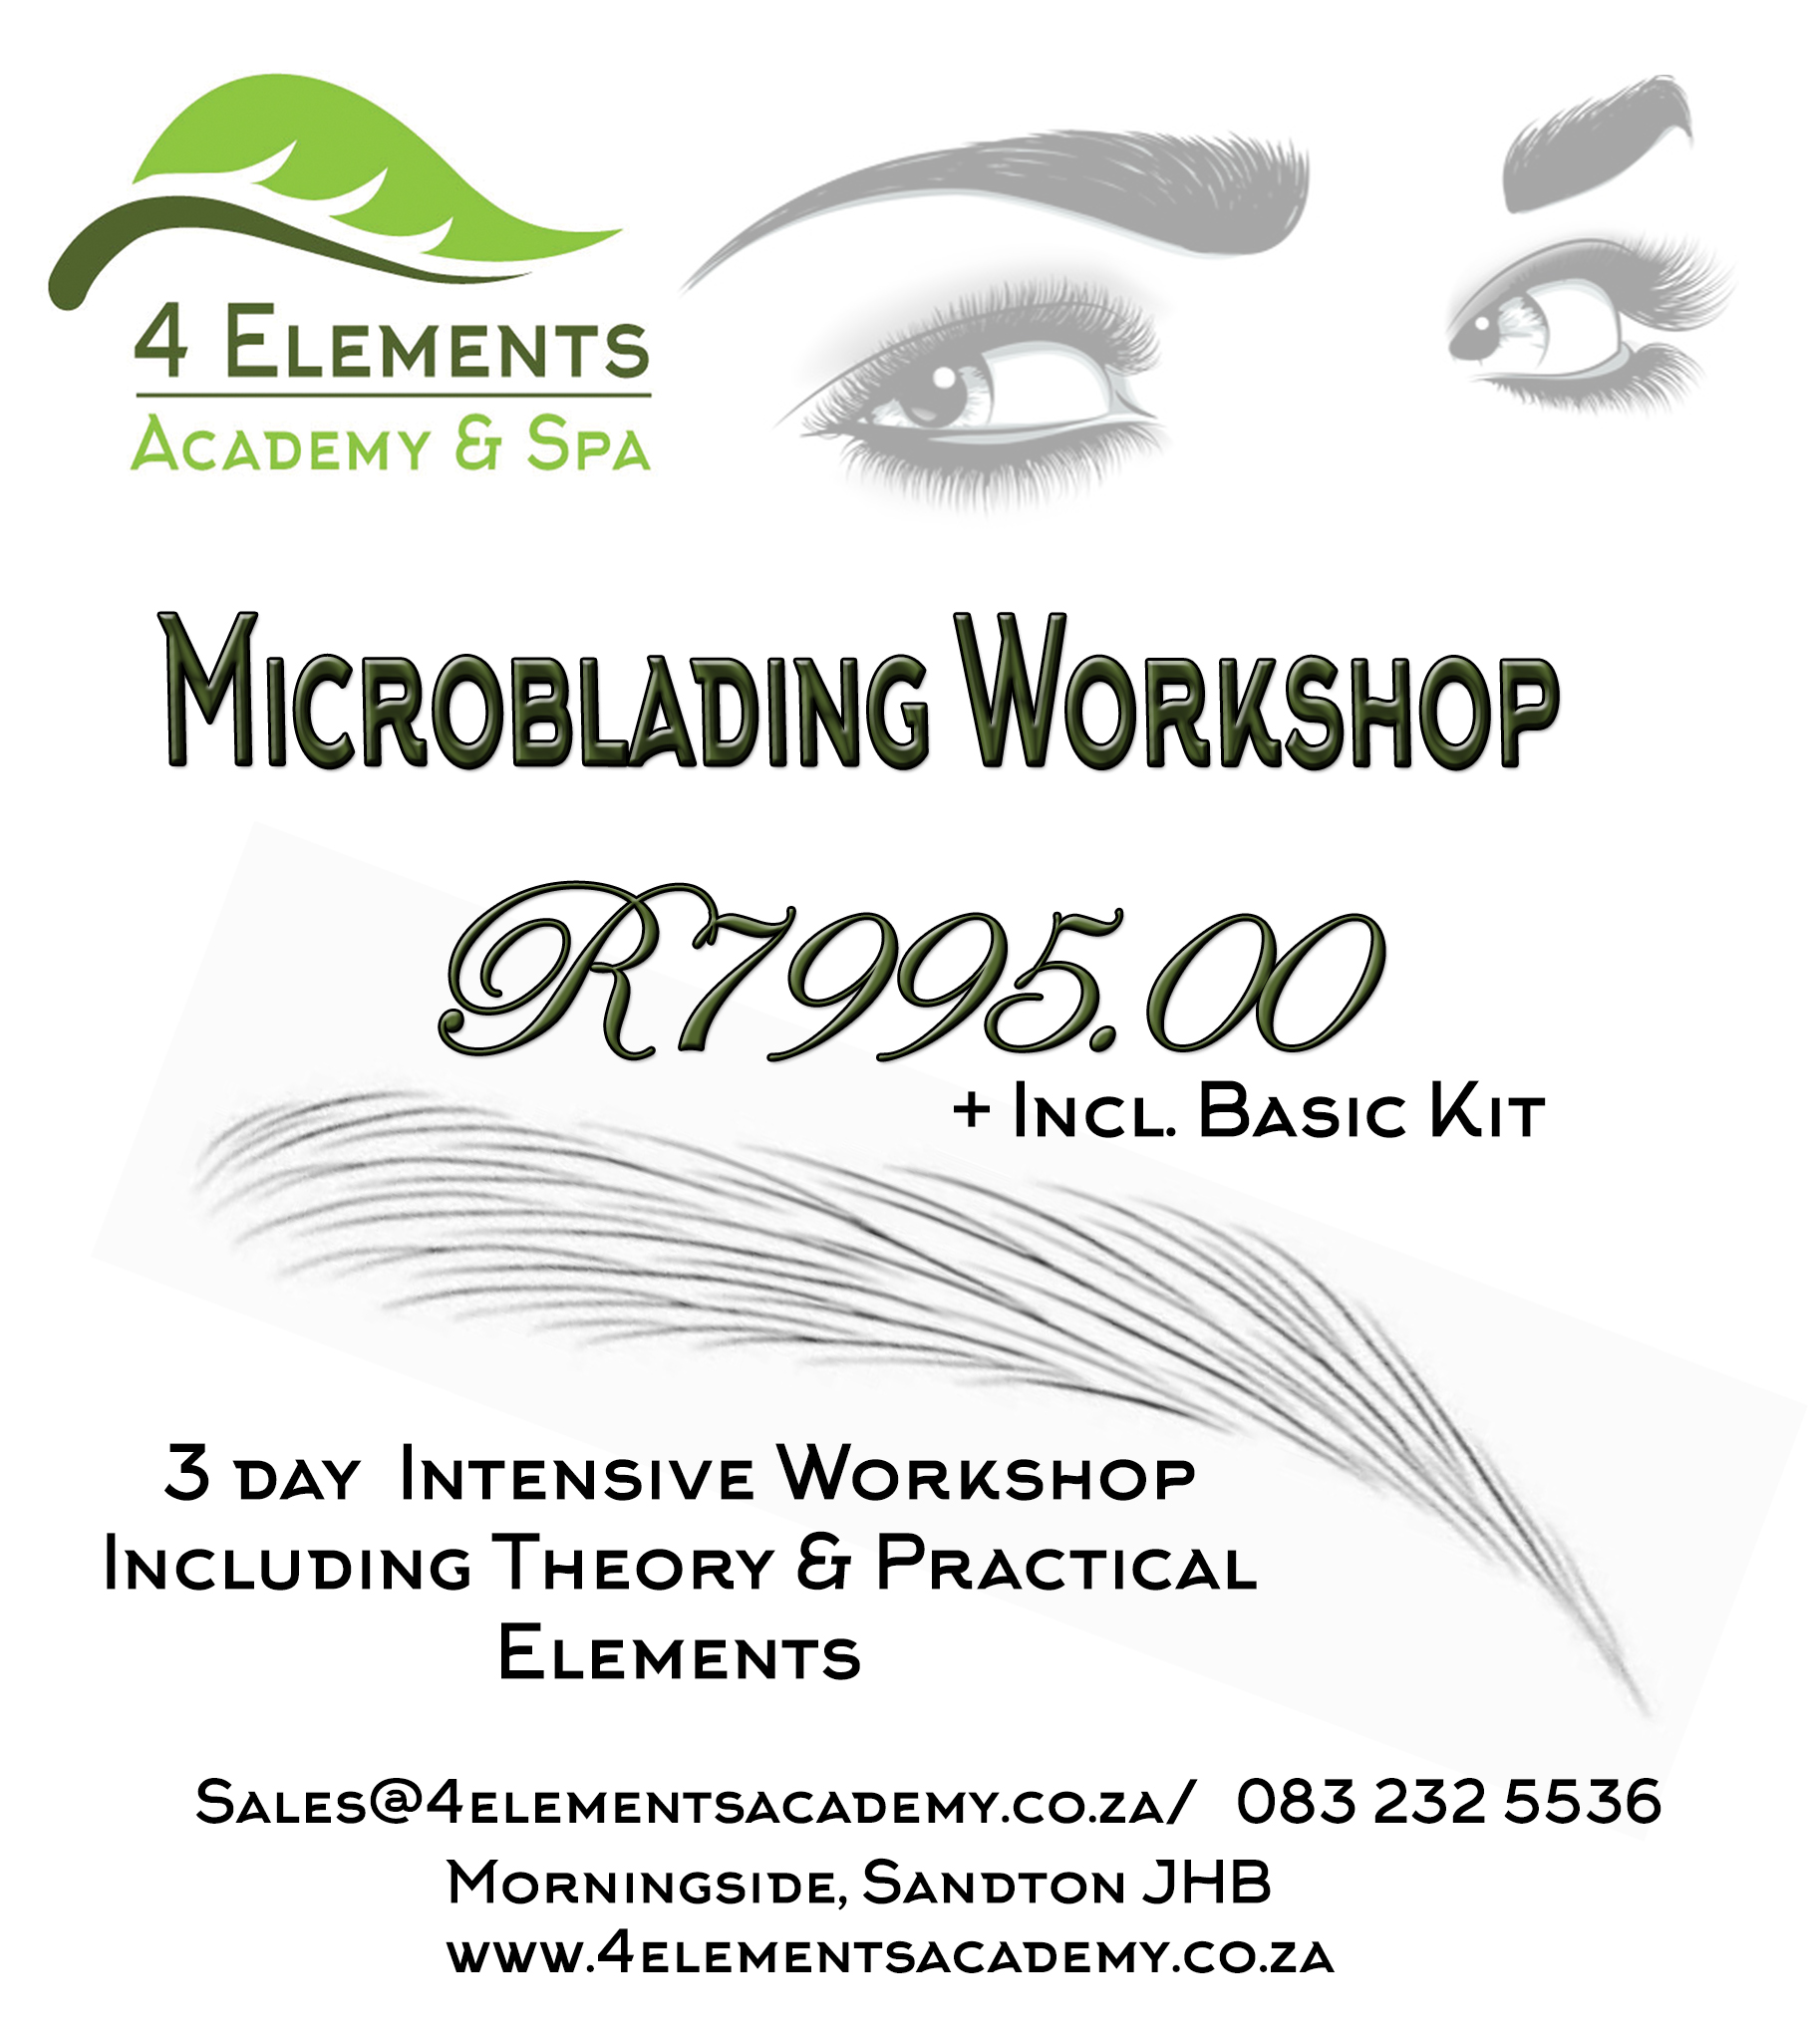 microblading-workshop-